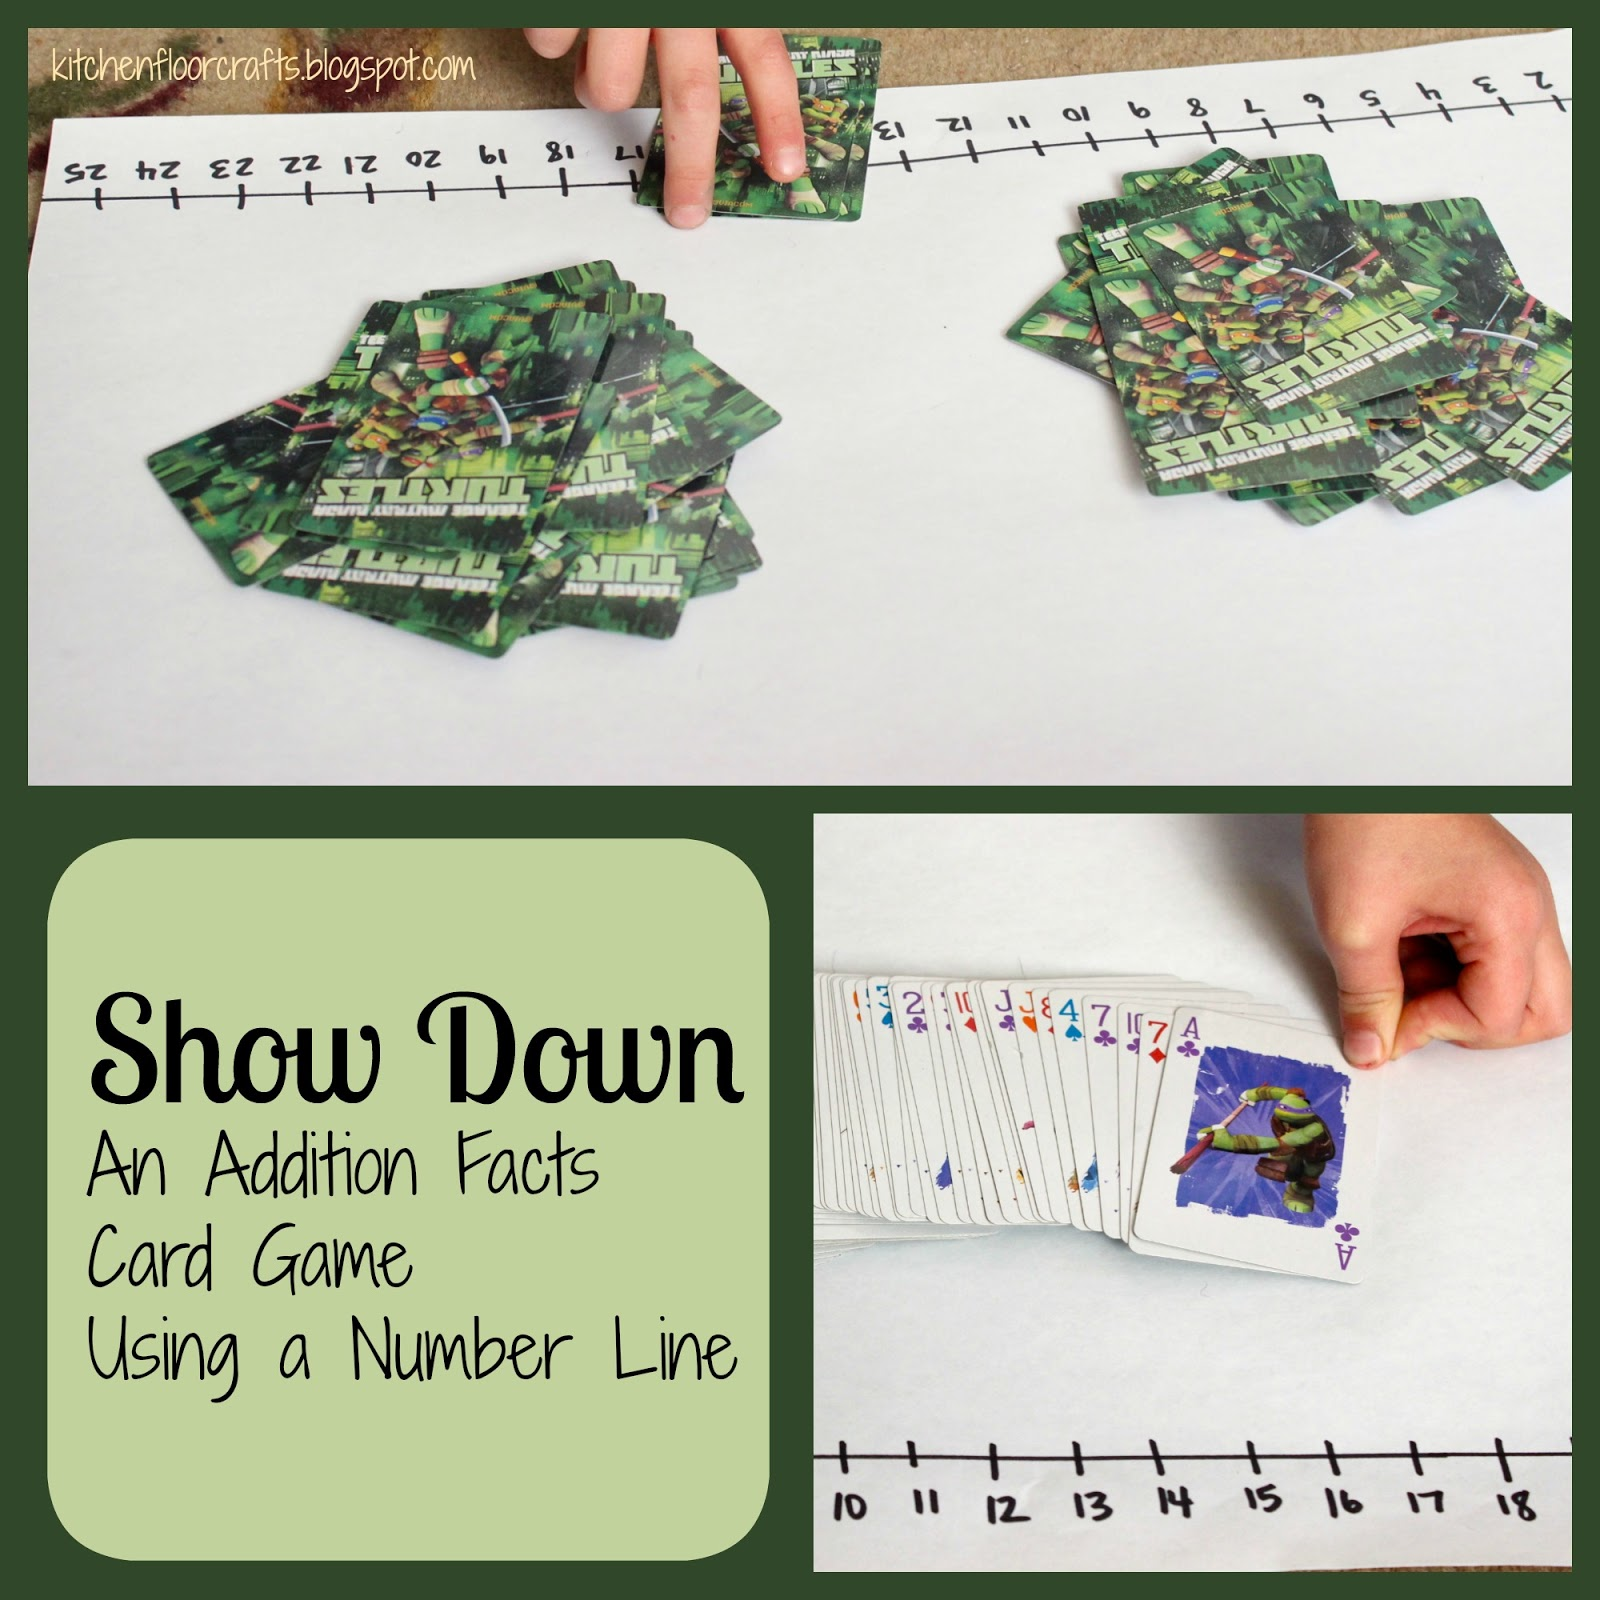 Kitchen Floor Crafts: Show Down: Addition Facts Card Game